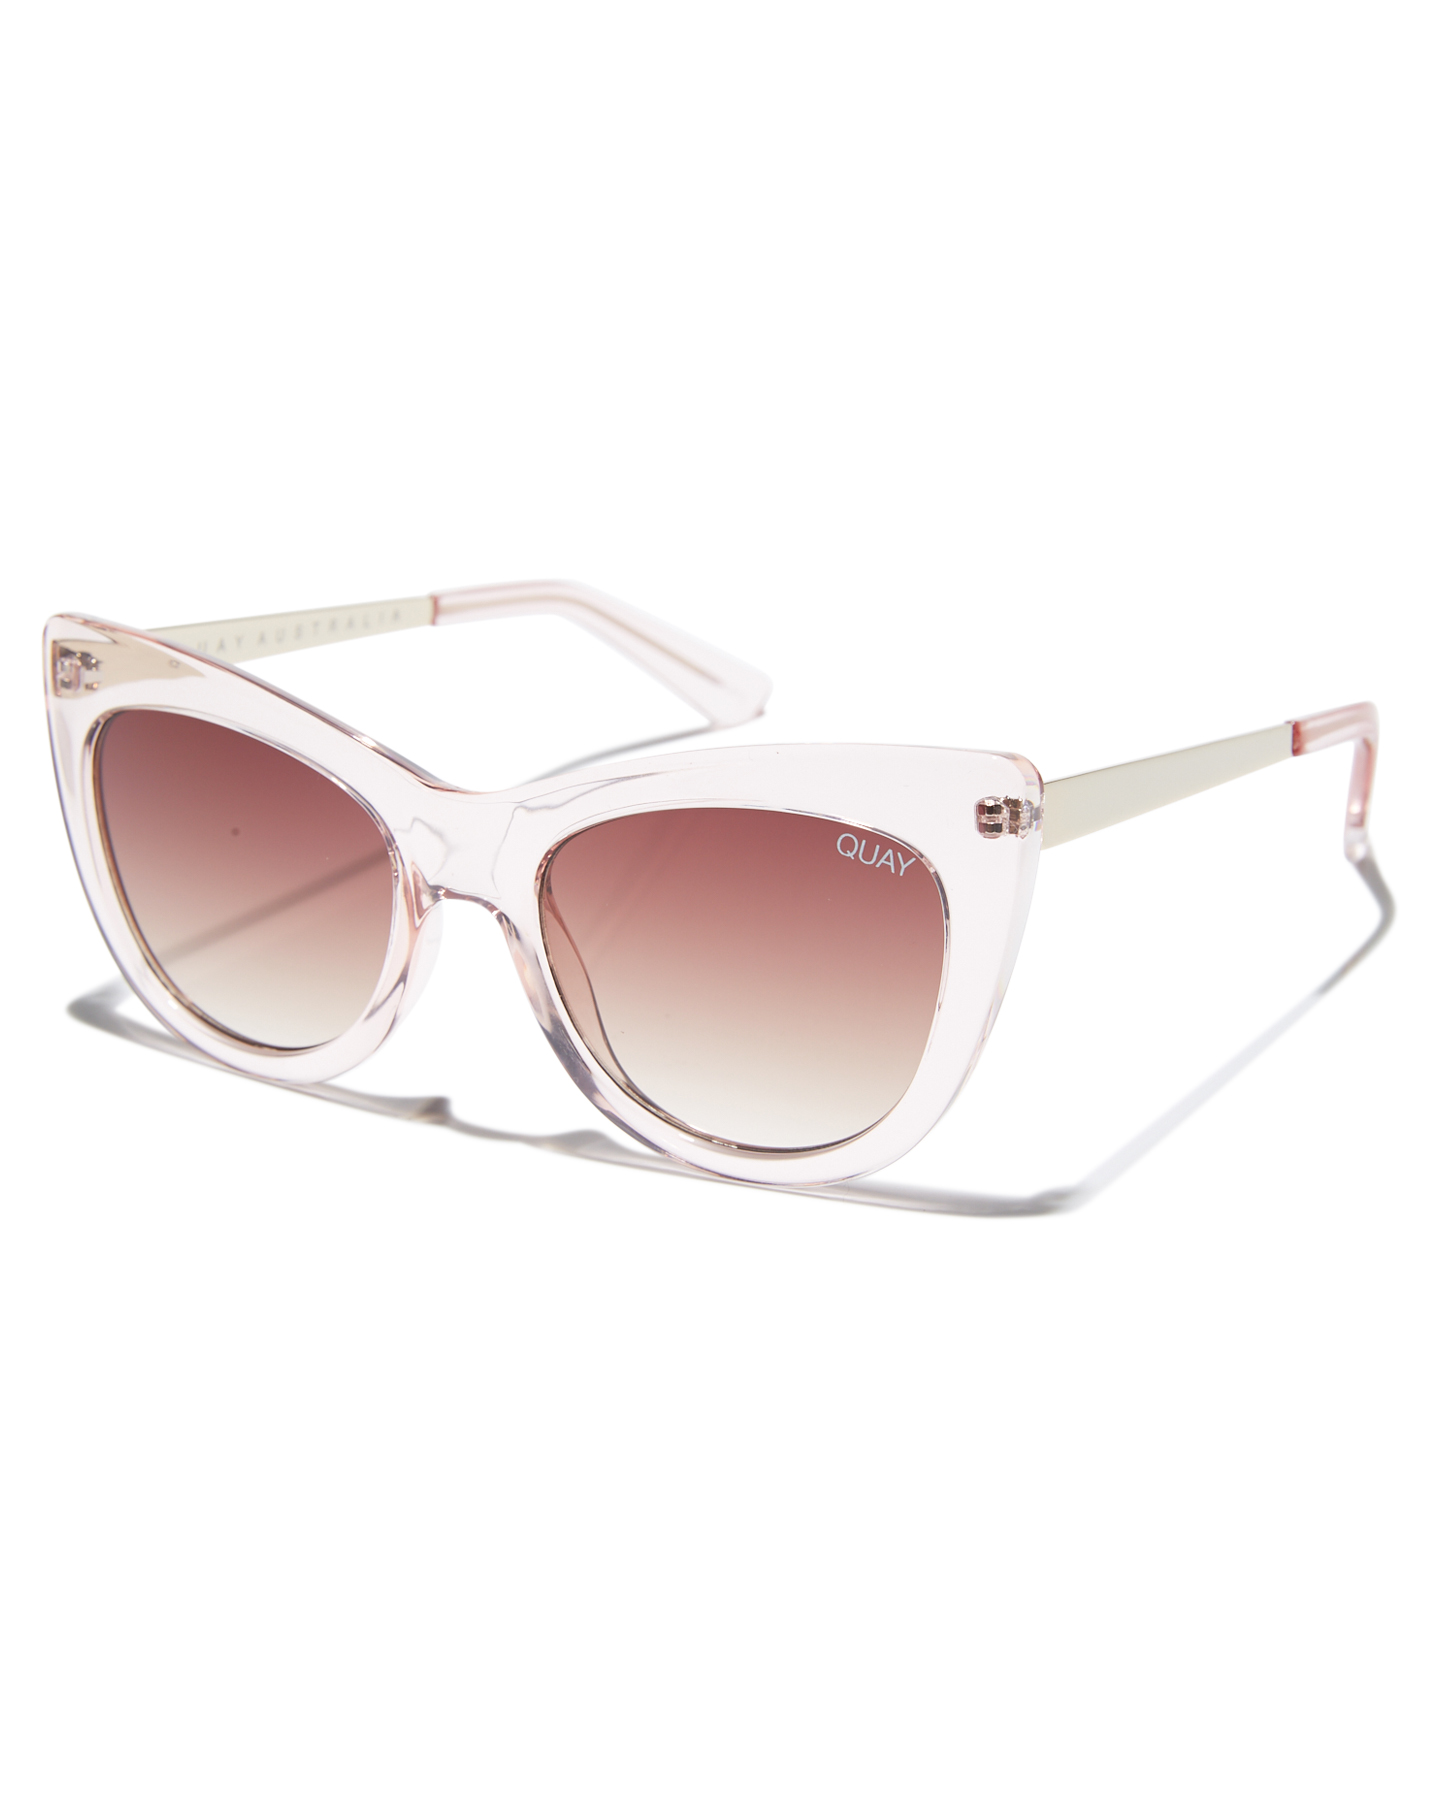 d476c5ab20 Details about New Quay Eyewear Women s Steal A Kiss Sunglasses Stainless  Steel Glass Pink N A